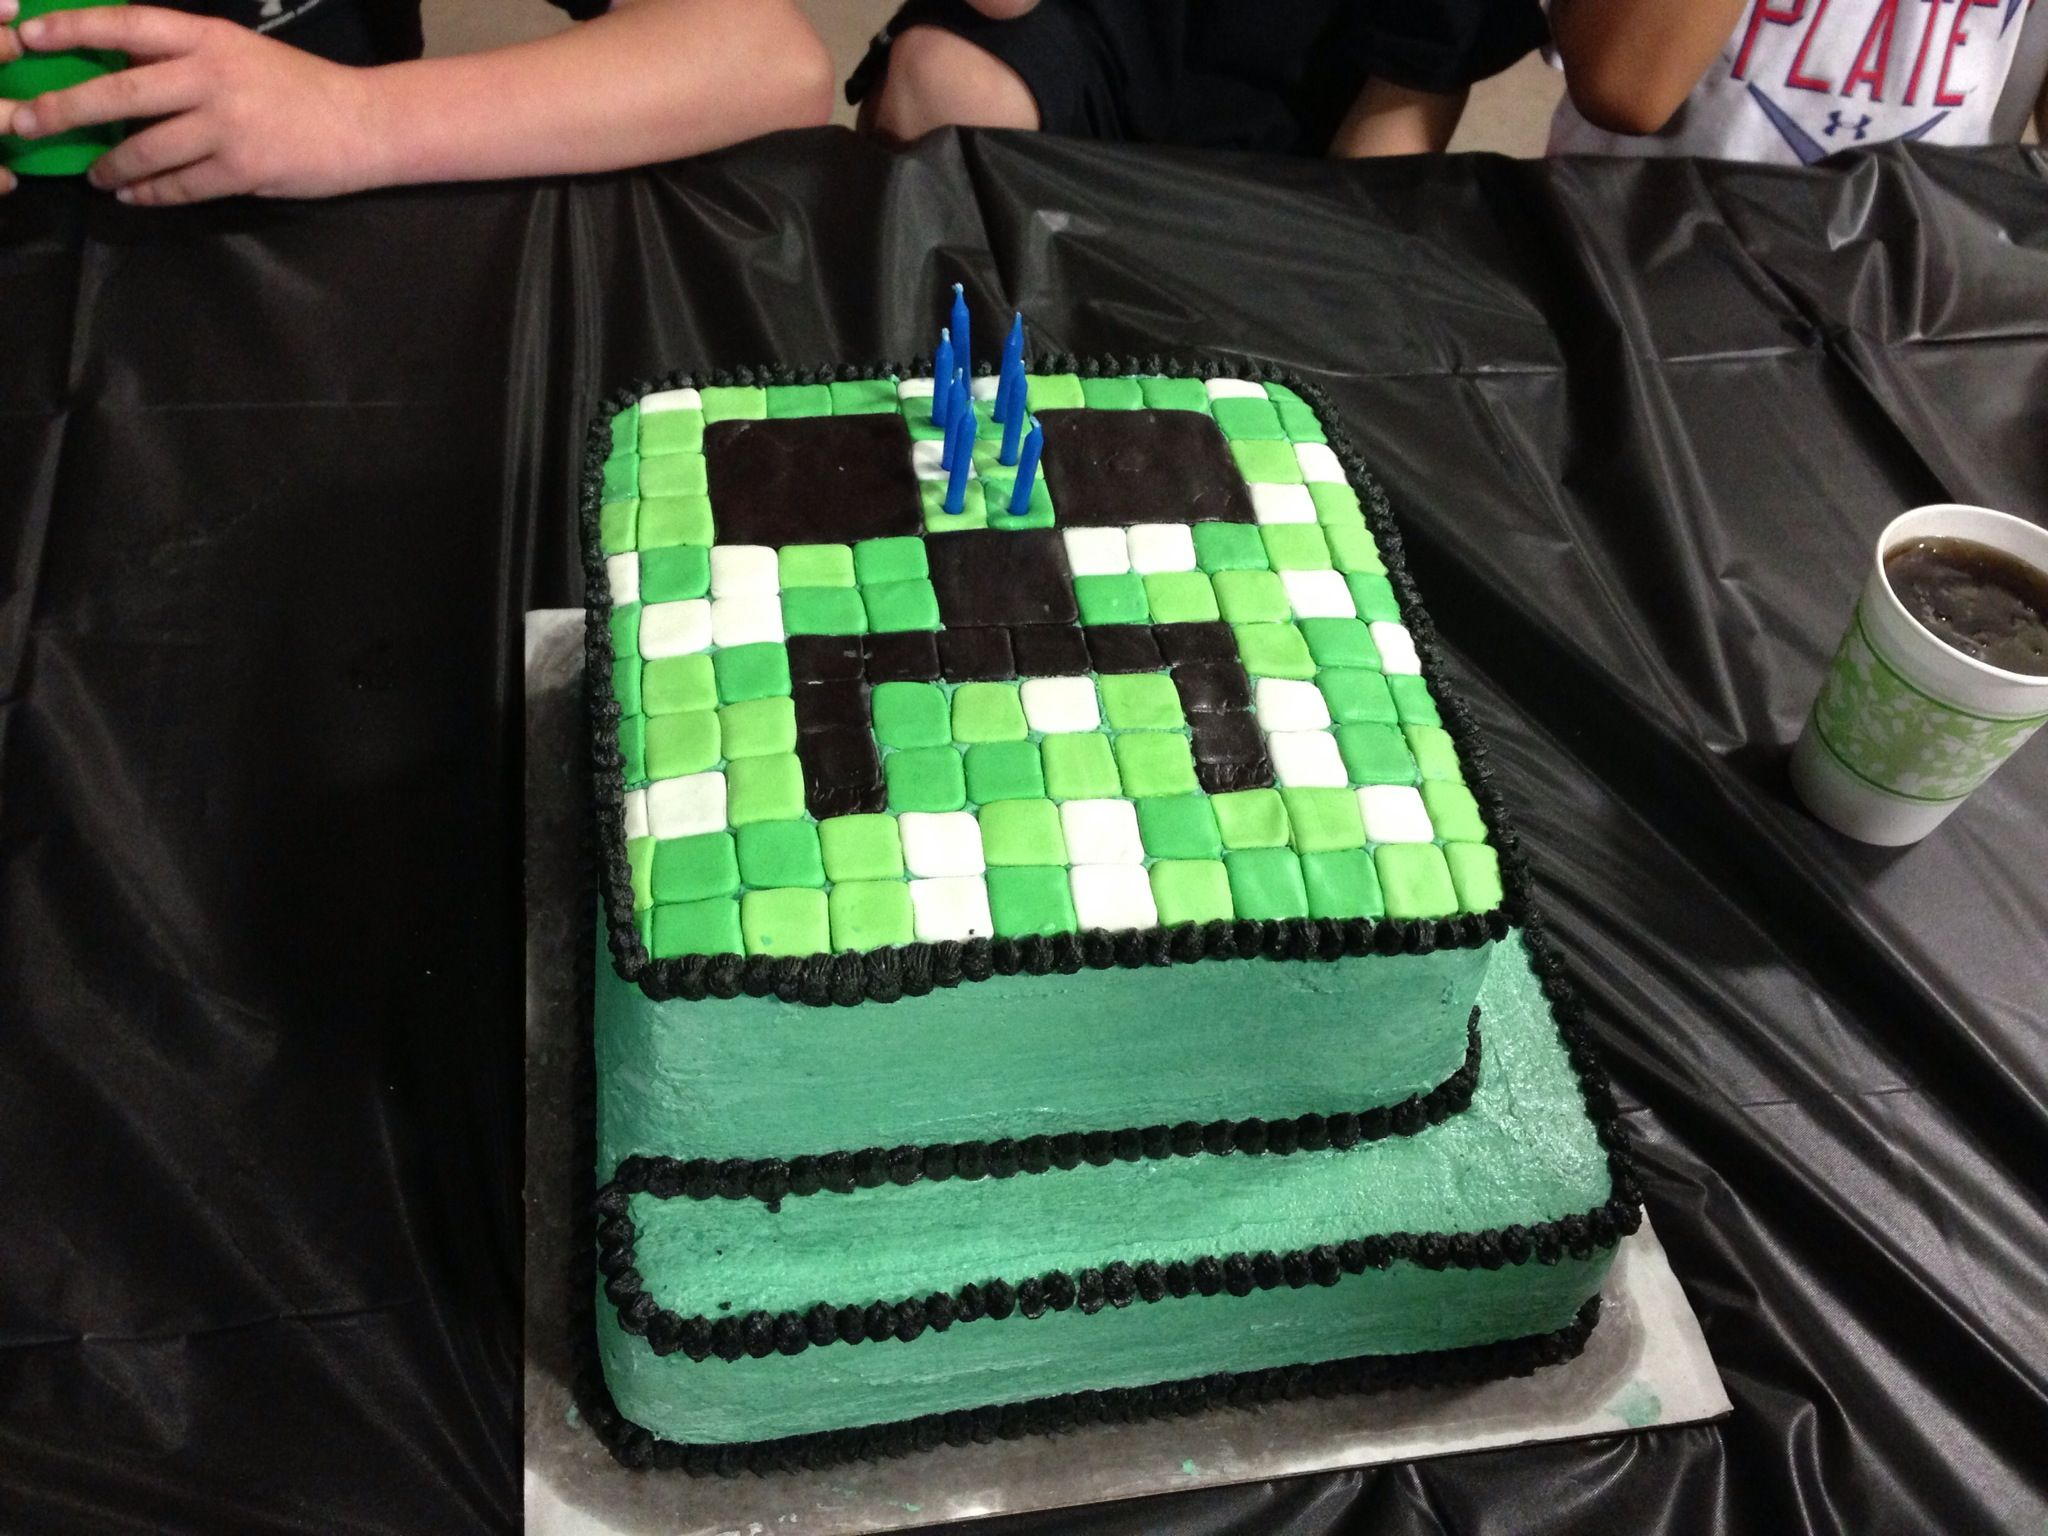 Austins minecraft birthday cake CaKe iDeAs Pinterest